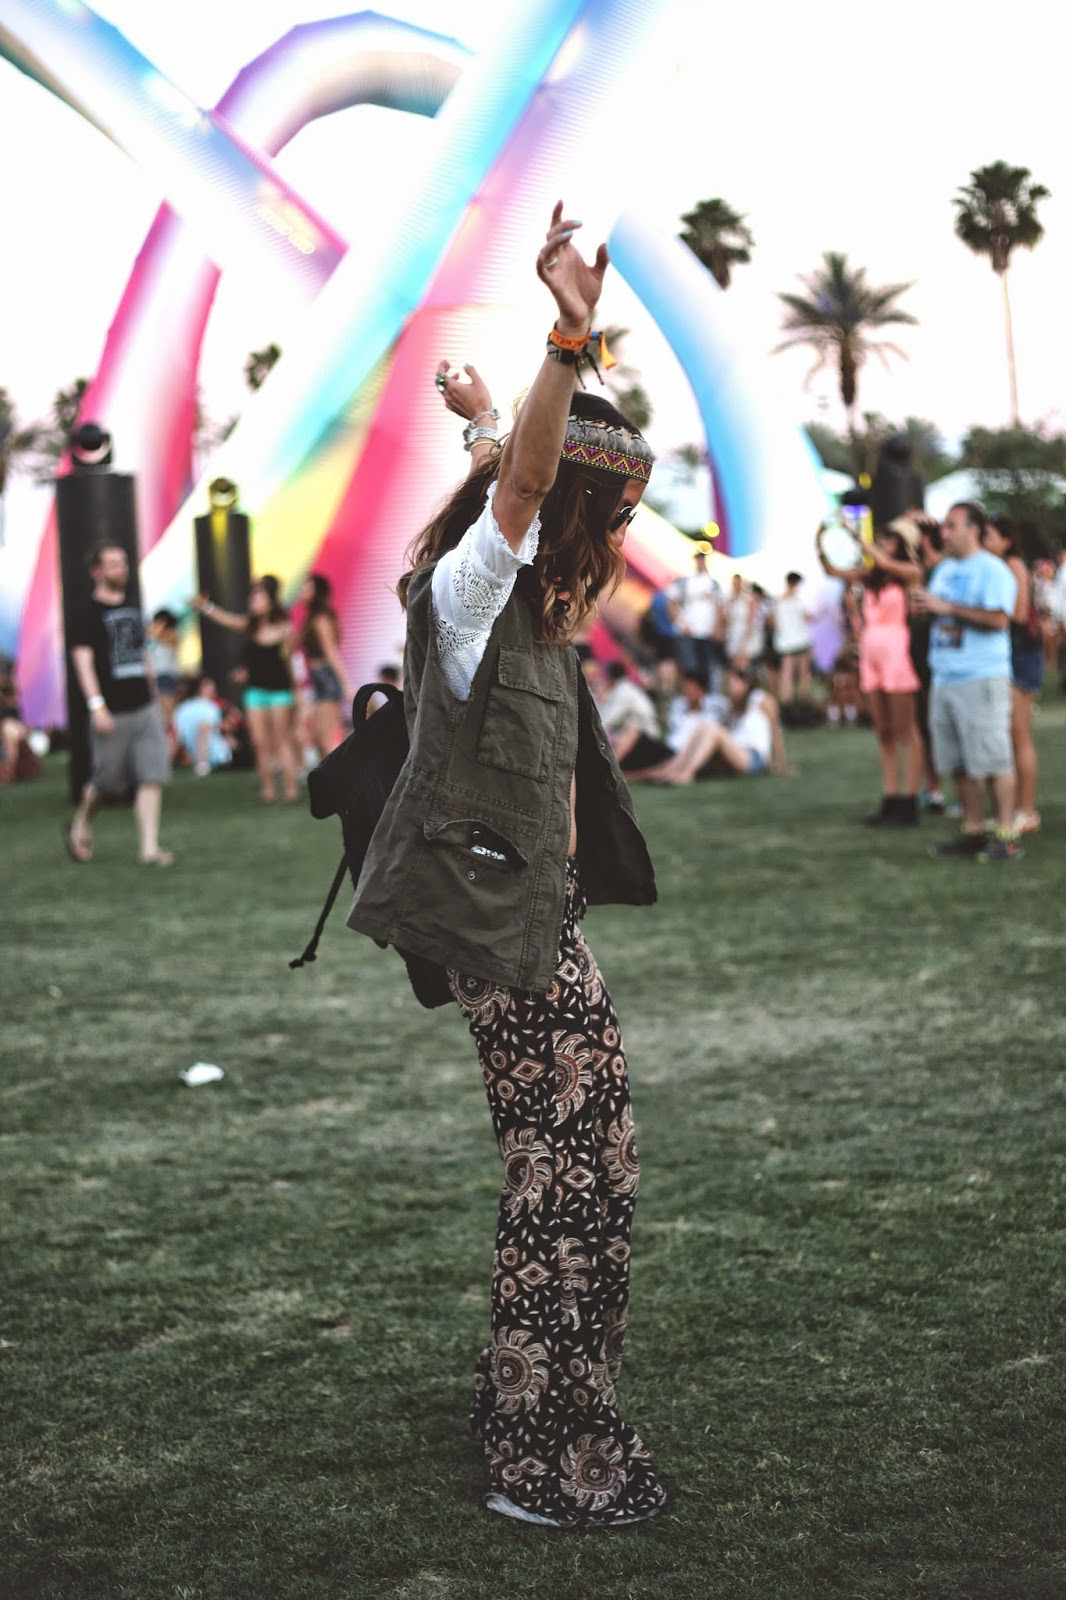 Lulus at Coachella, Tobruckave, Coachella